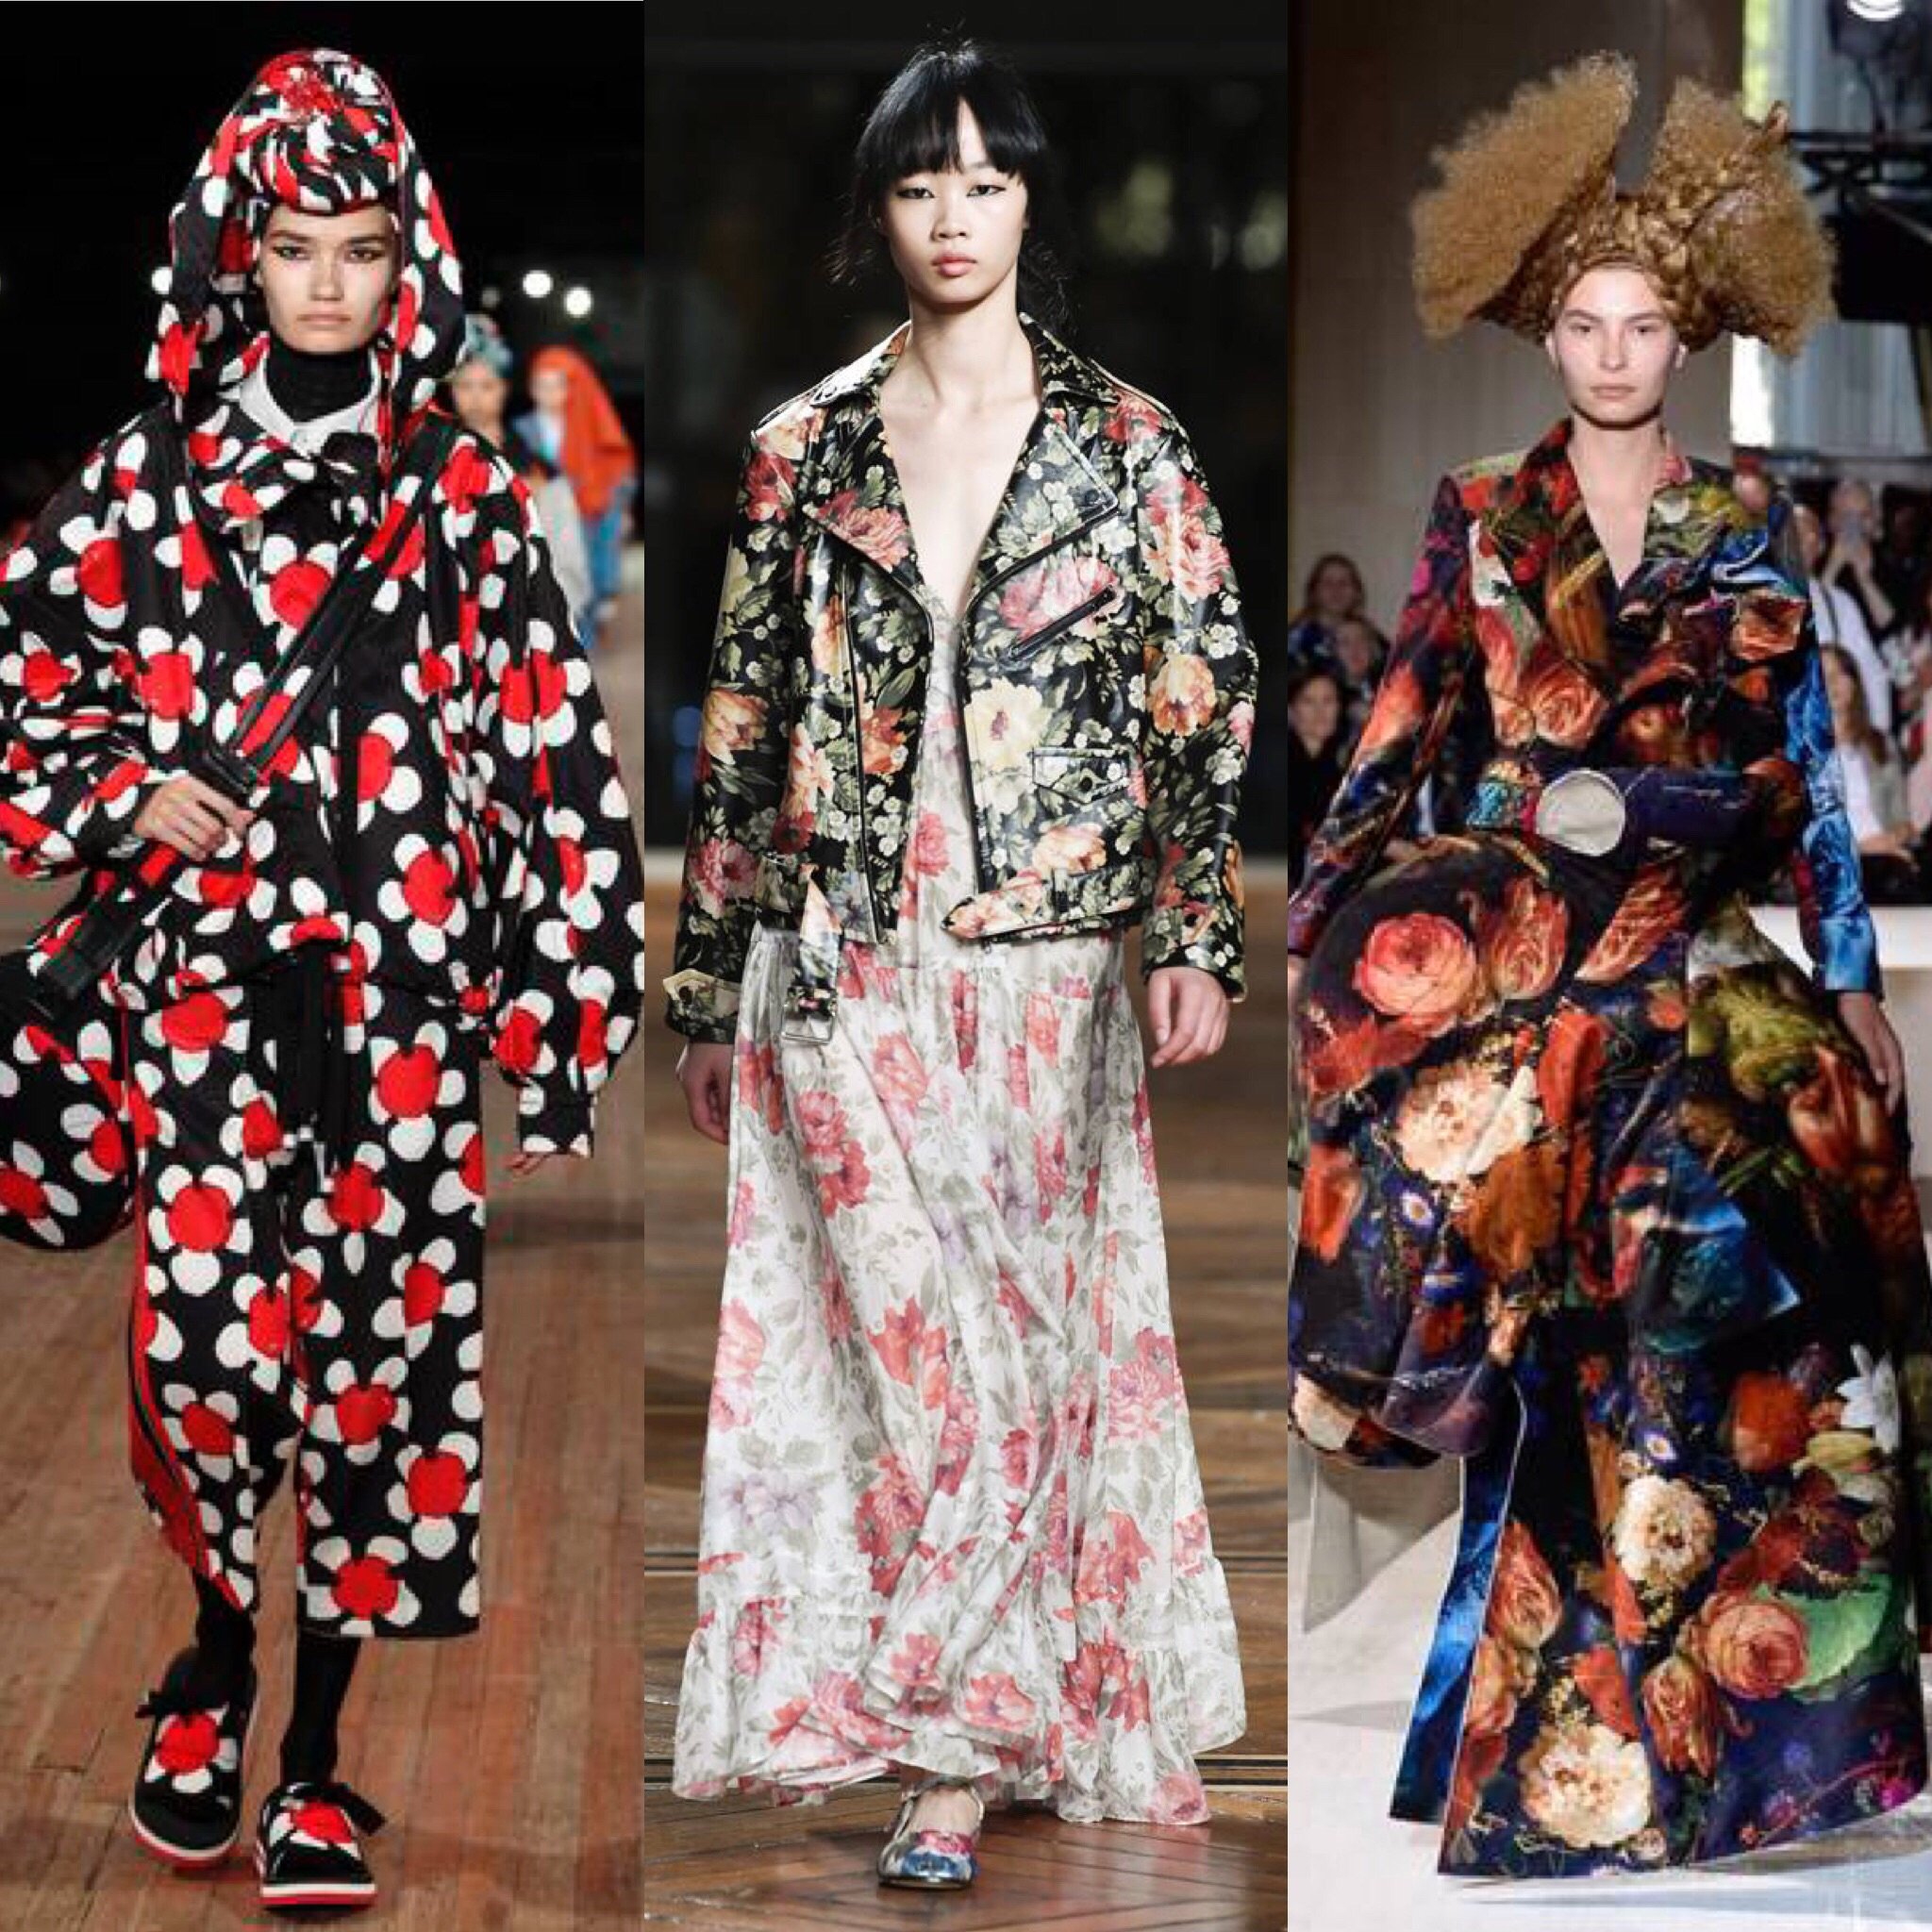 Spring/summer 2018 RTW Collections of (L to R) Marc Jacobs, Louis Vuitton, Comme des Garçons